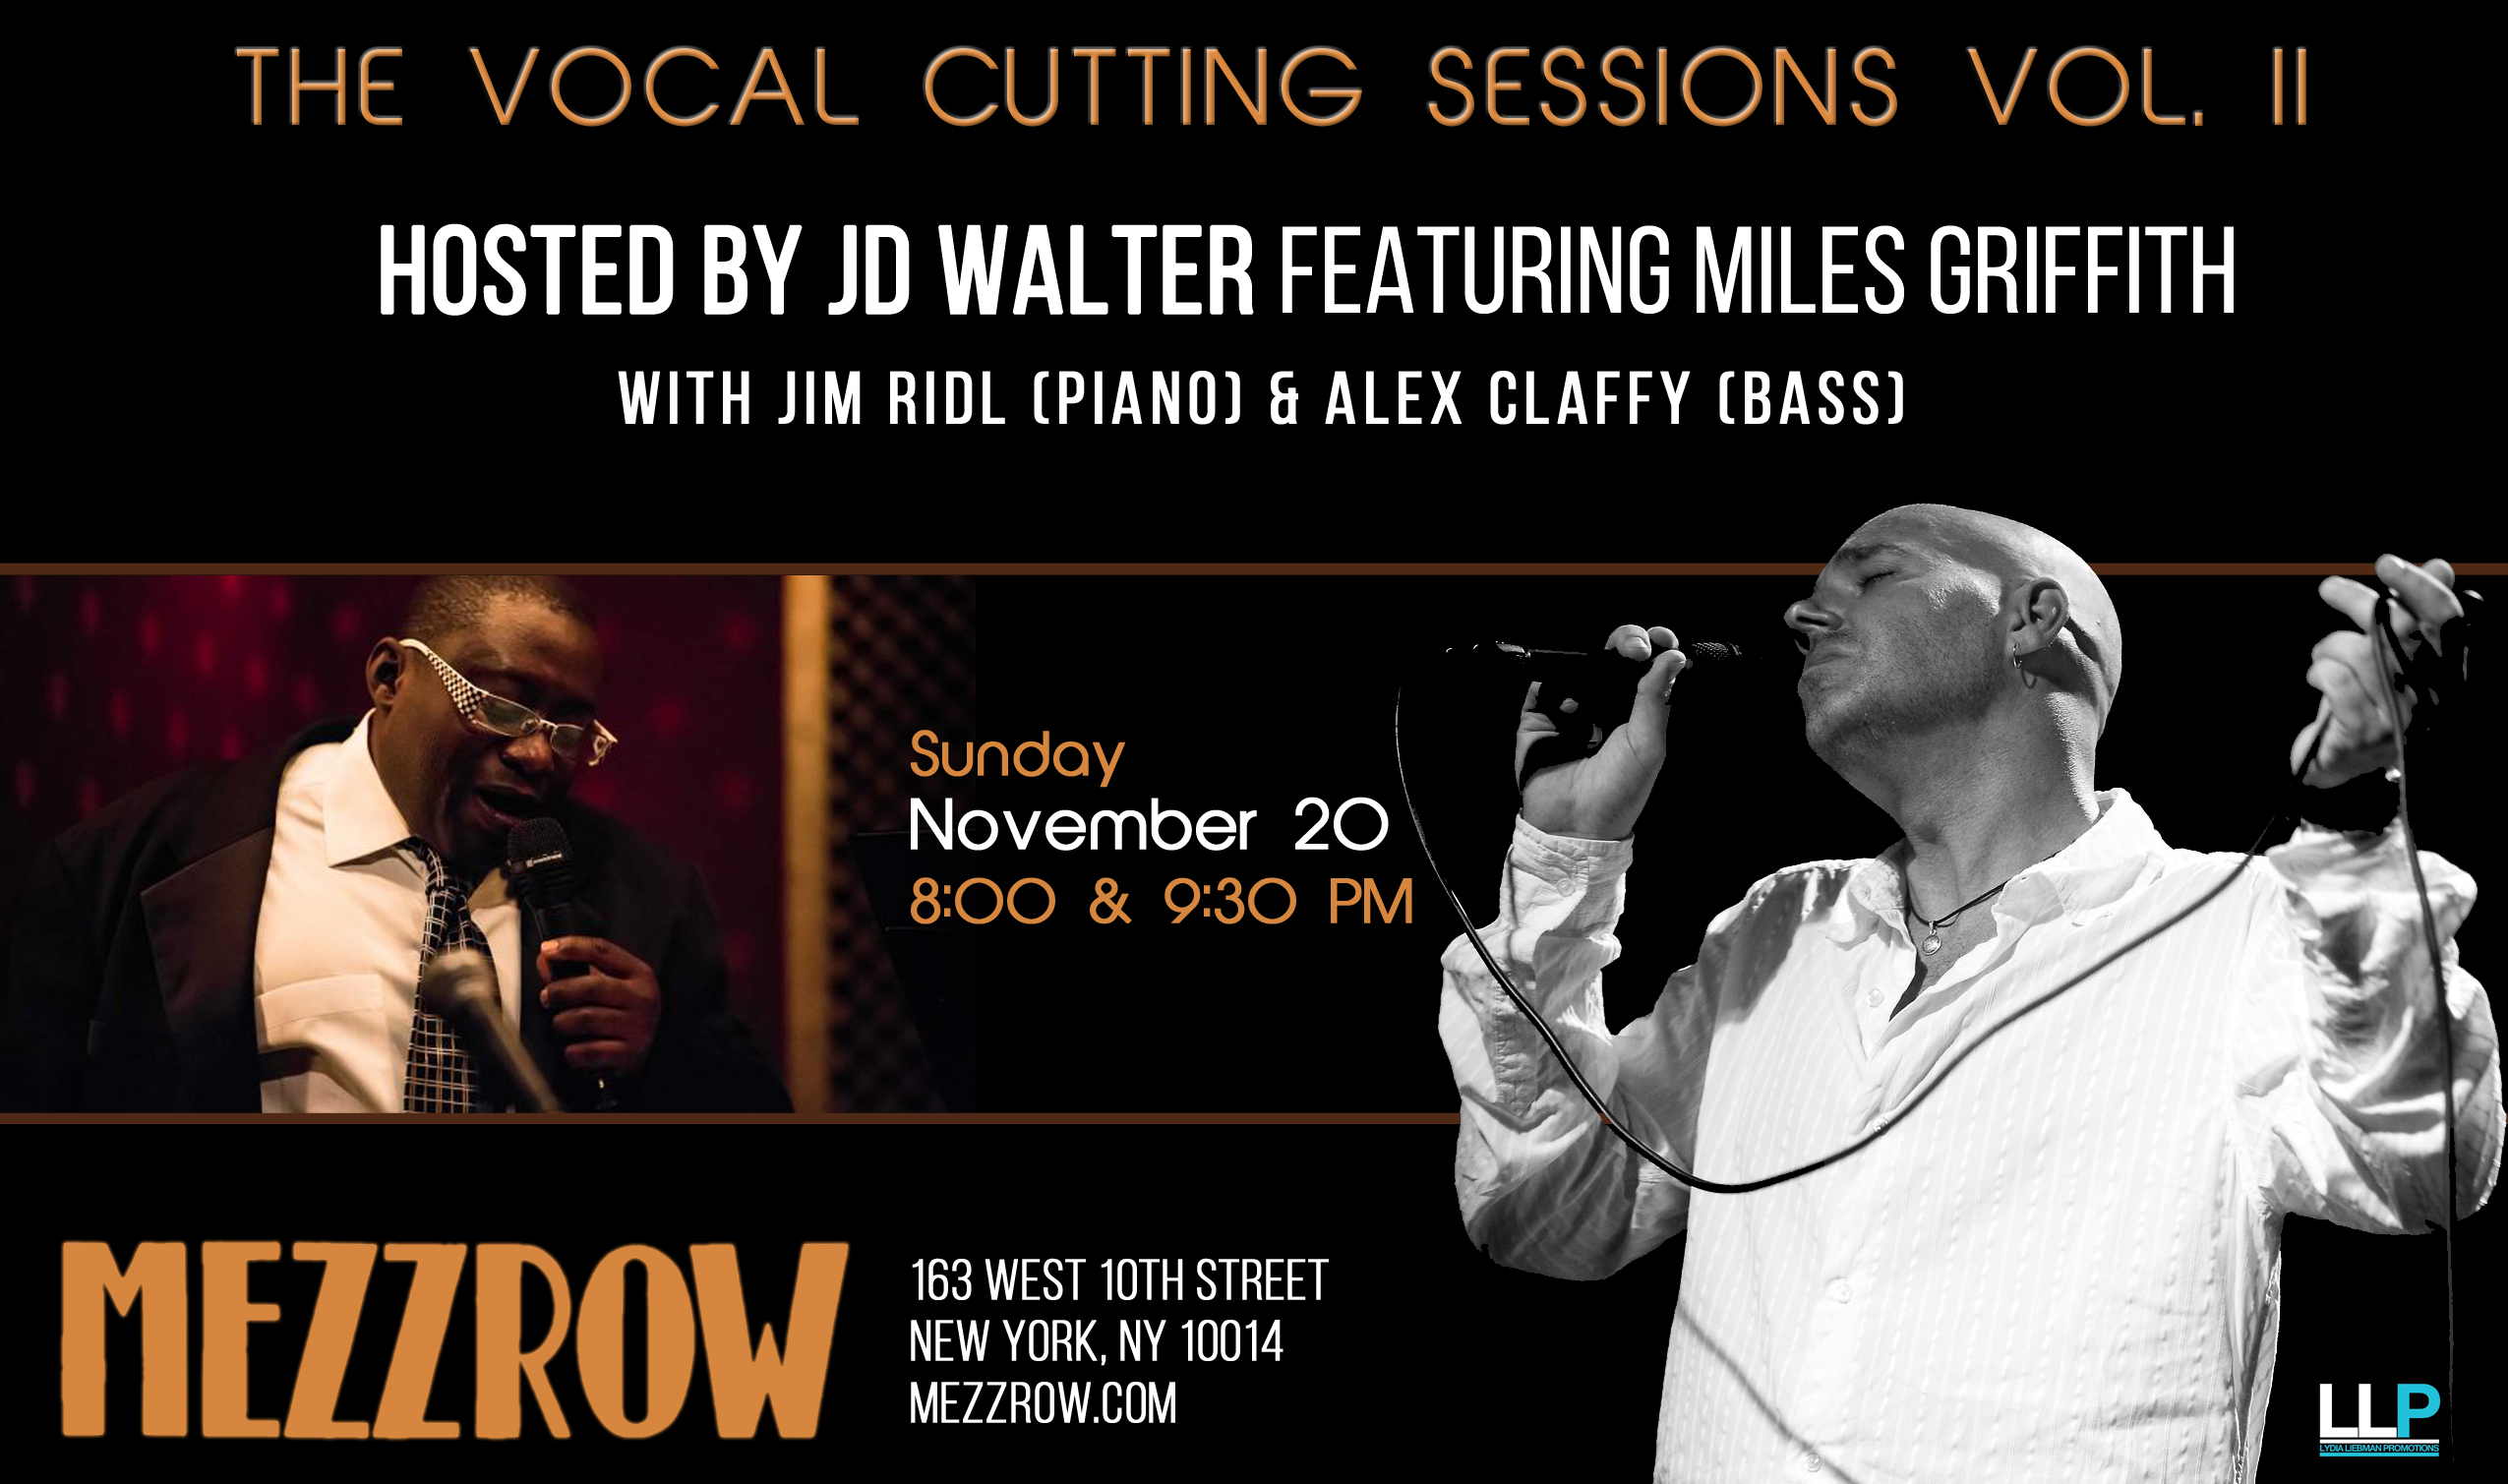 JD Walter Presents Second Vocal Cutting Session at Mezzrow with guest Miles Griffith